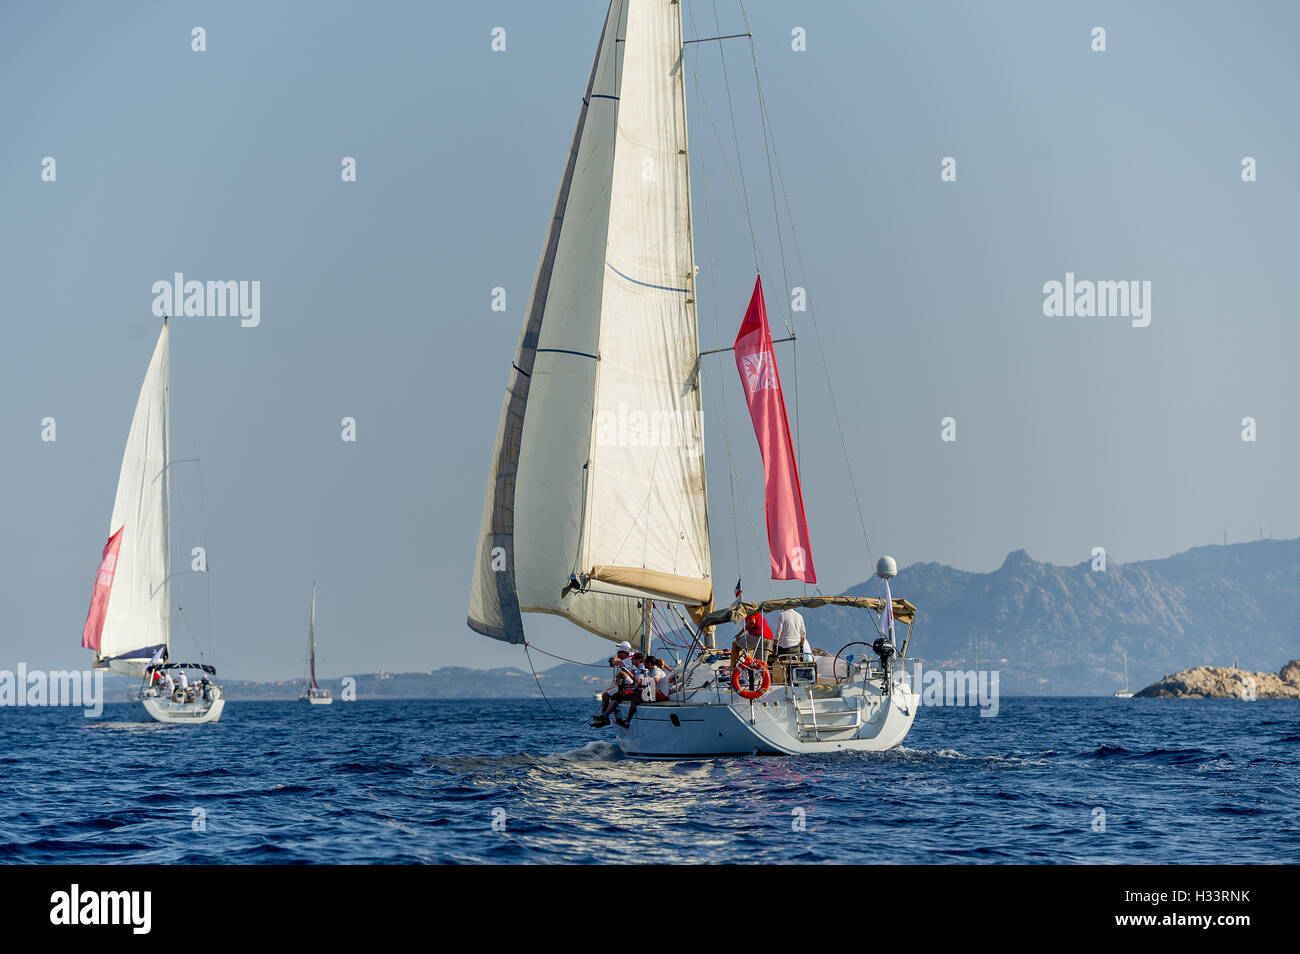 Group of cruising sailboats is sailing in the Mediterranean sea. - Stock Image